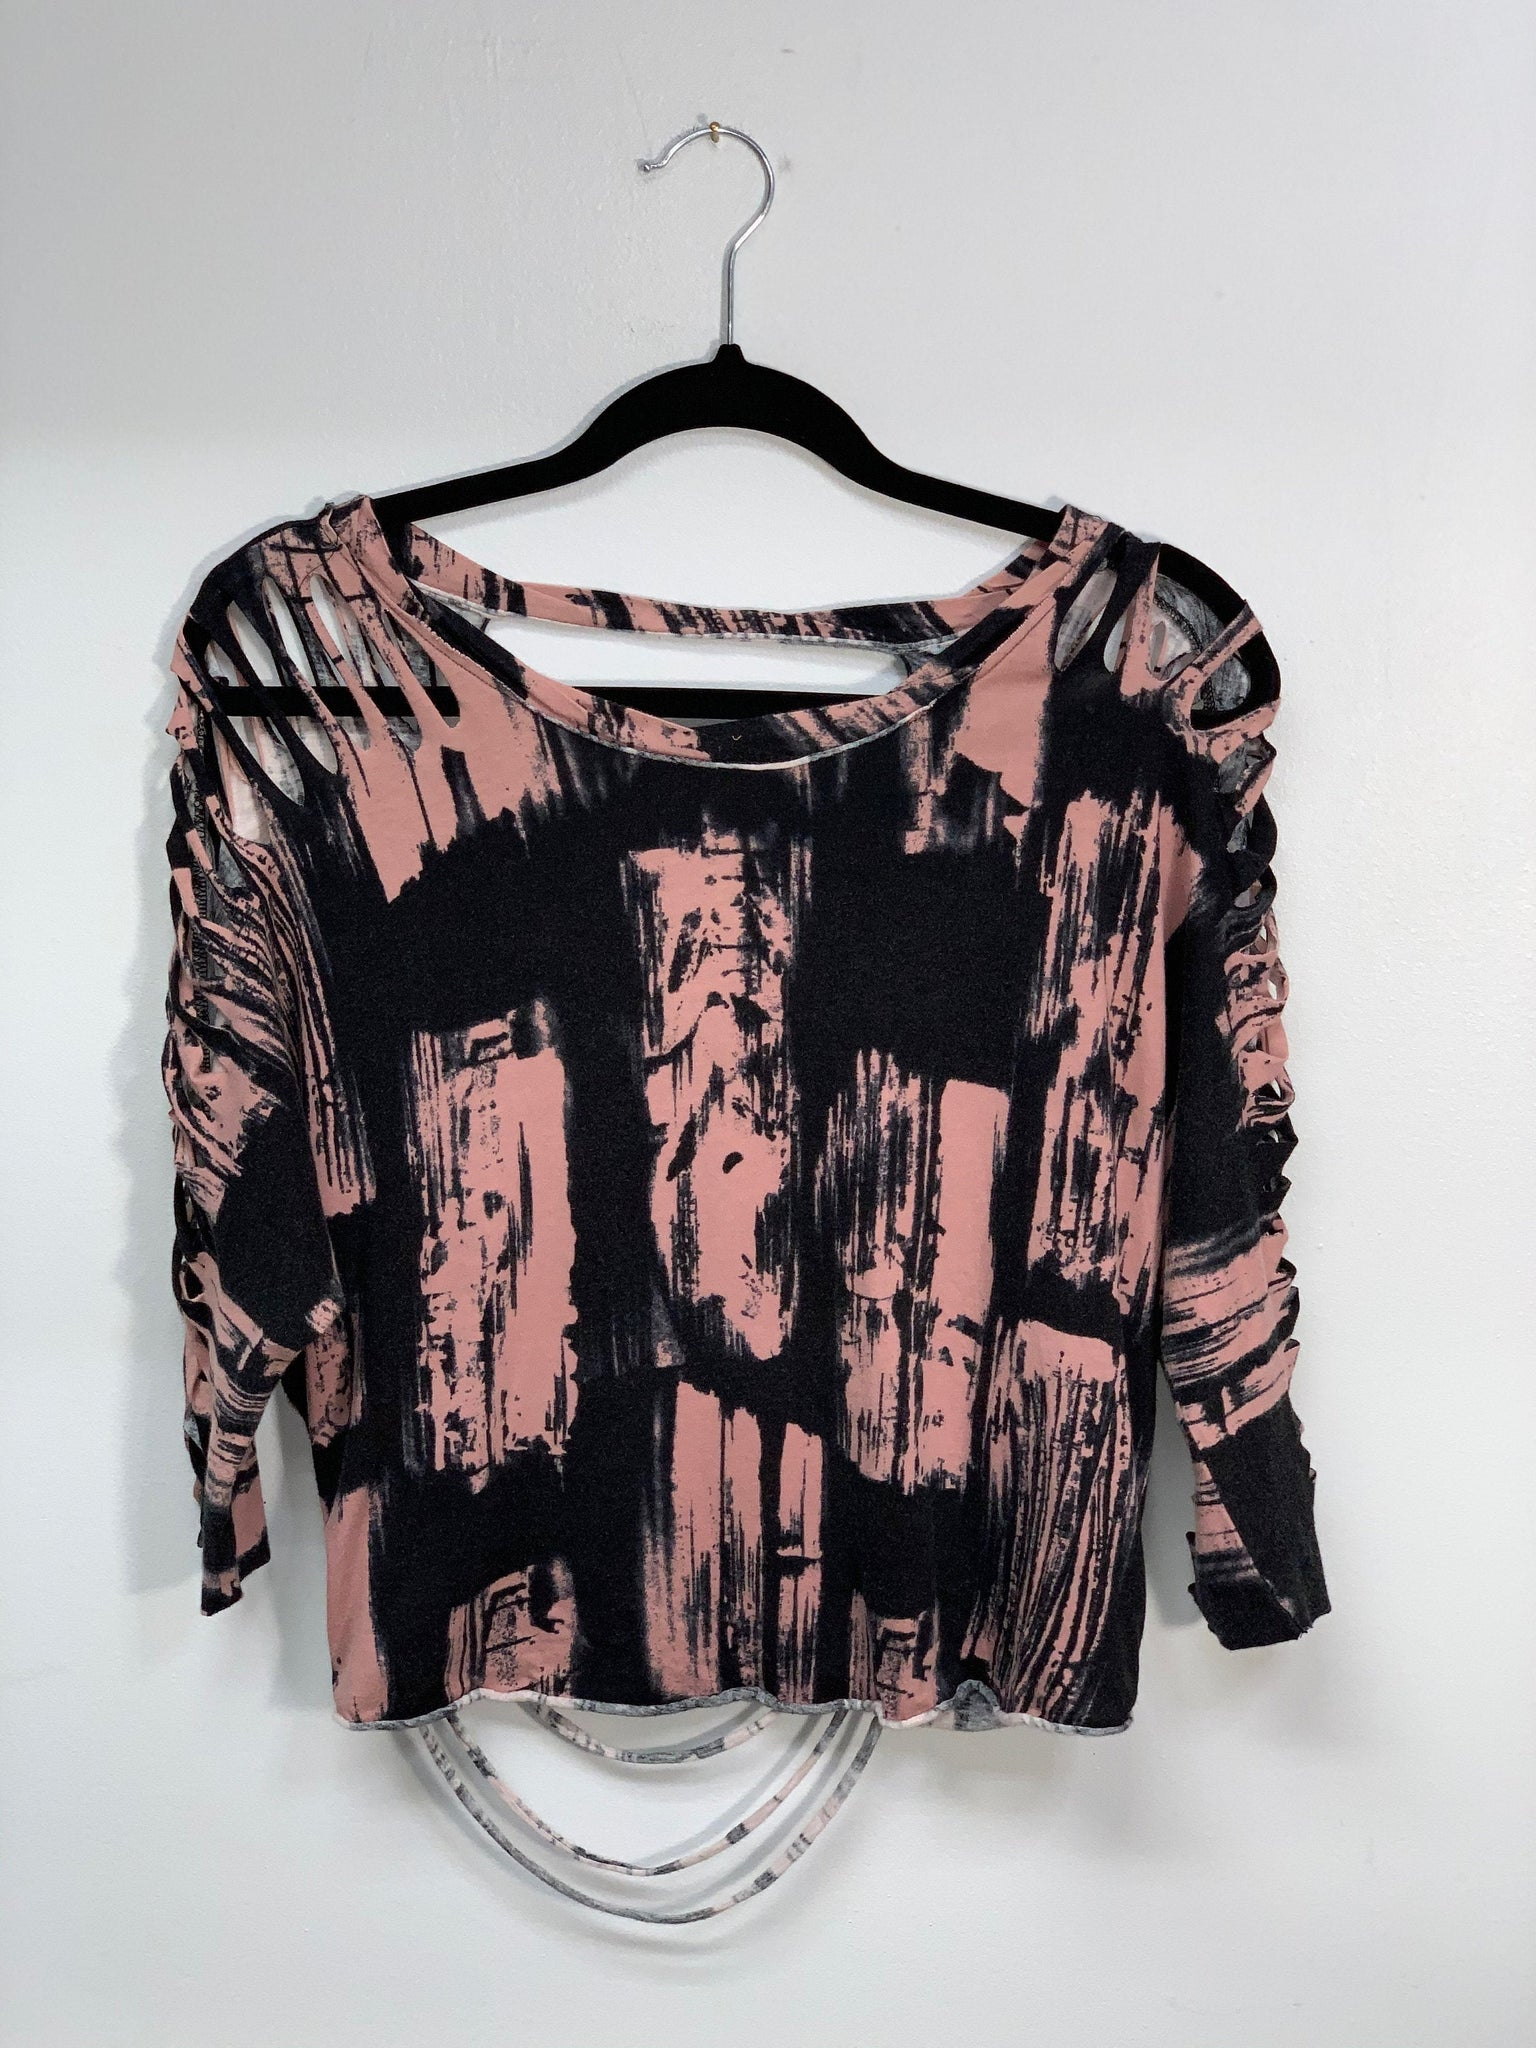 Pink and Black Large Dolman Style Shirt cut by Sniptease